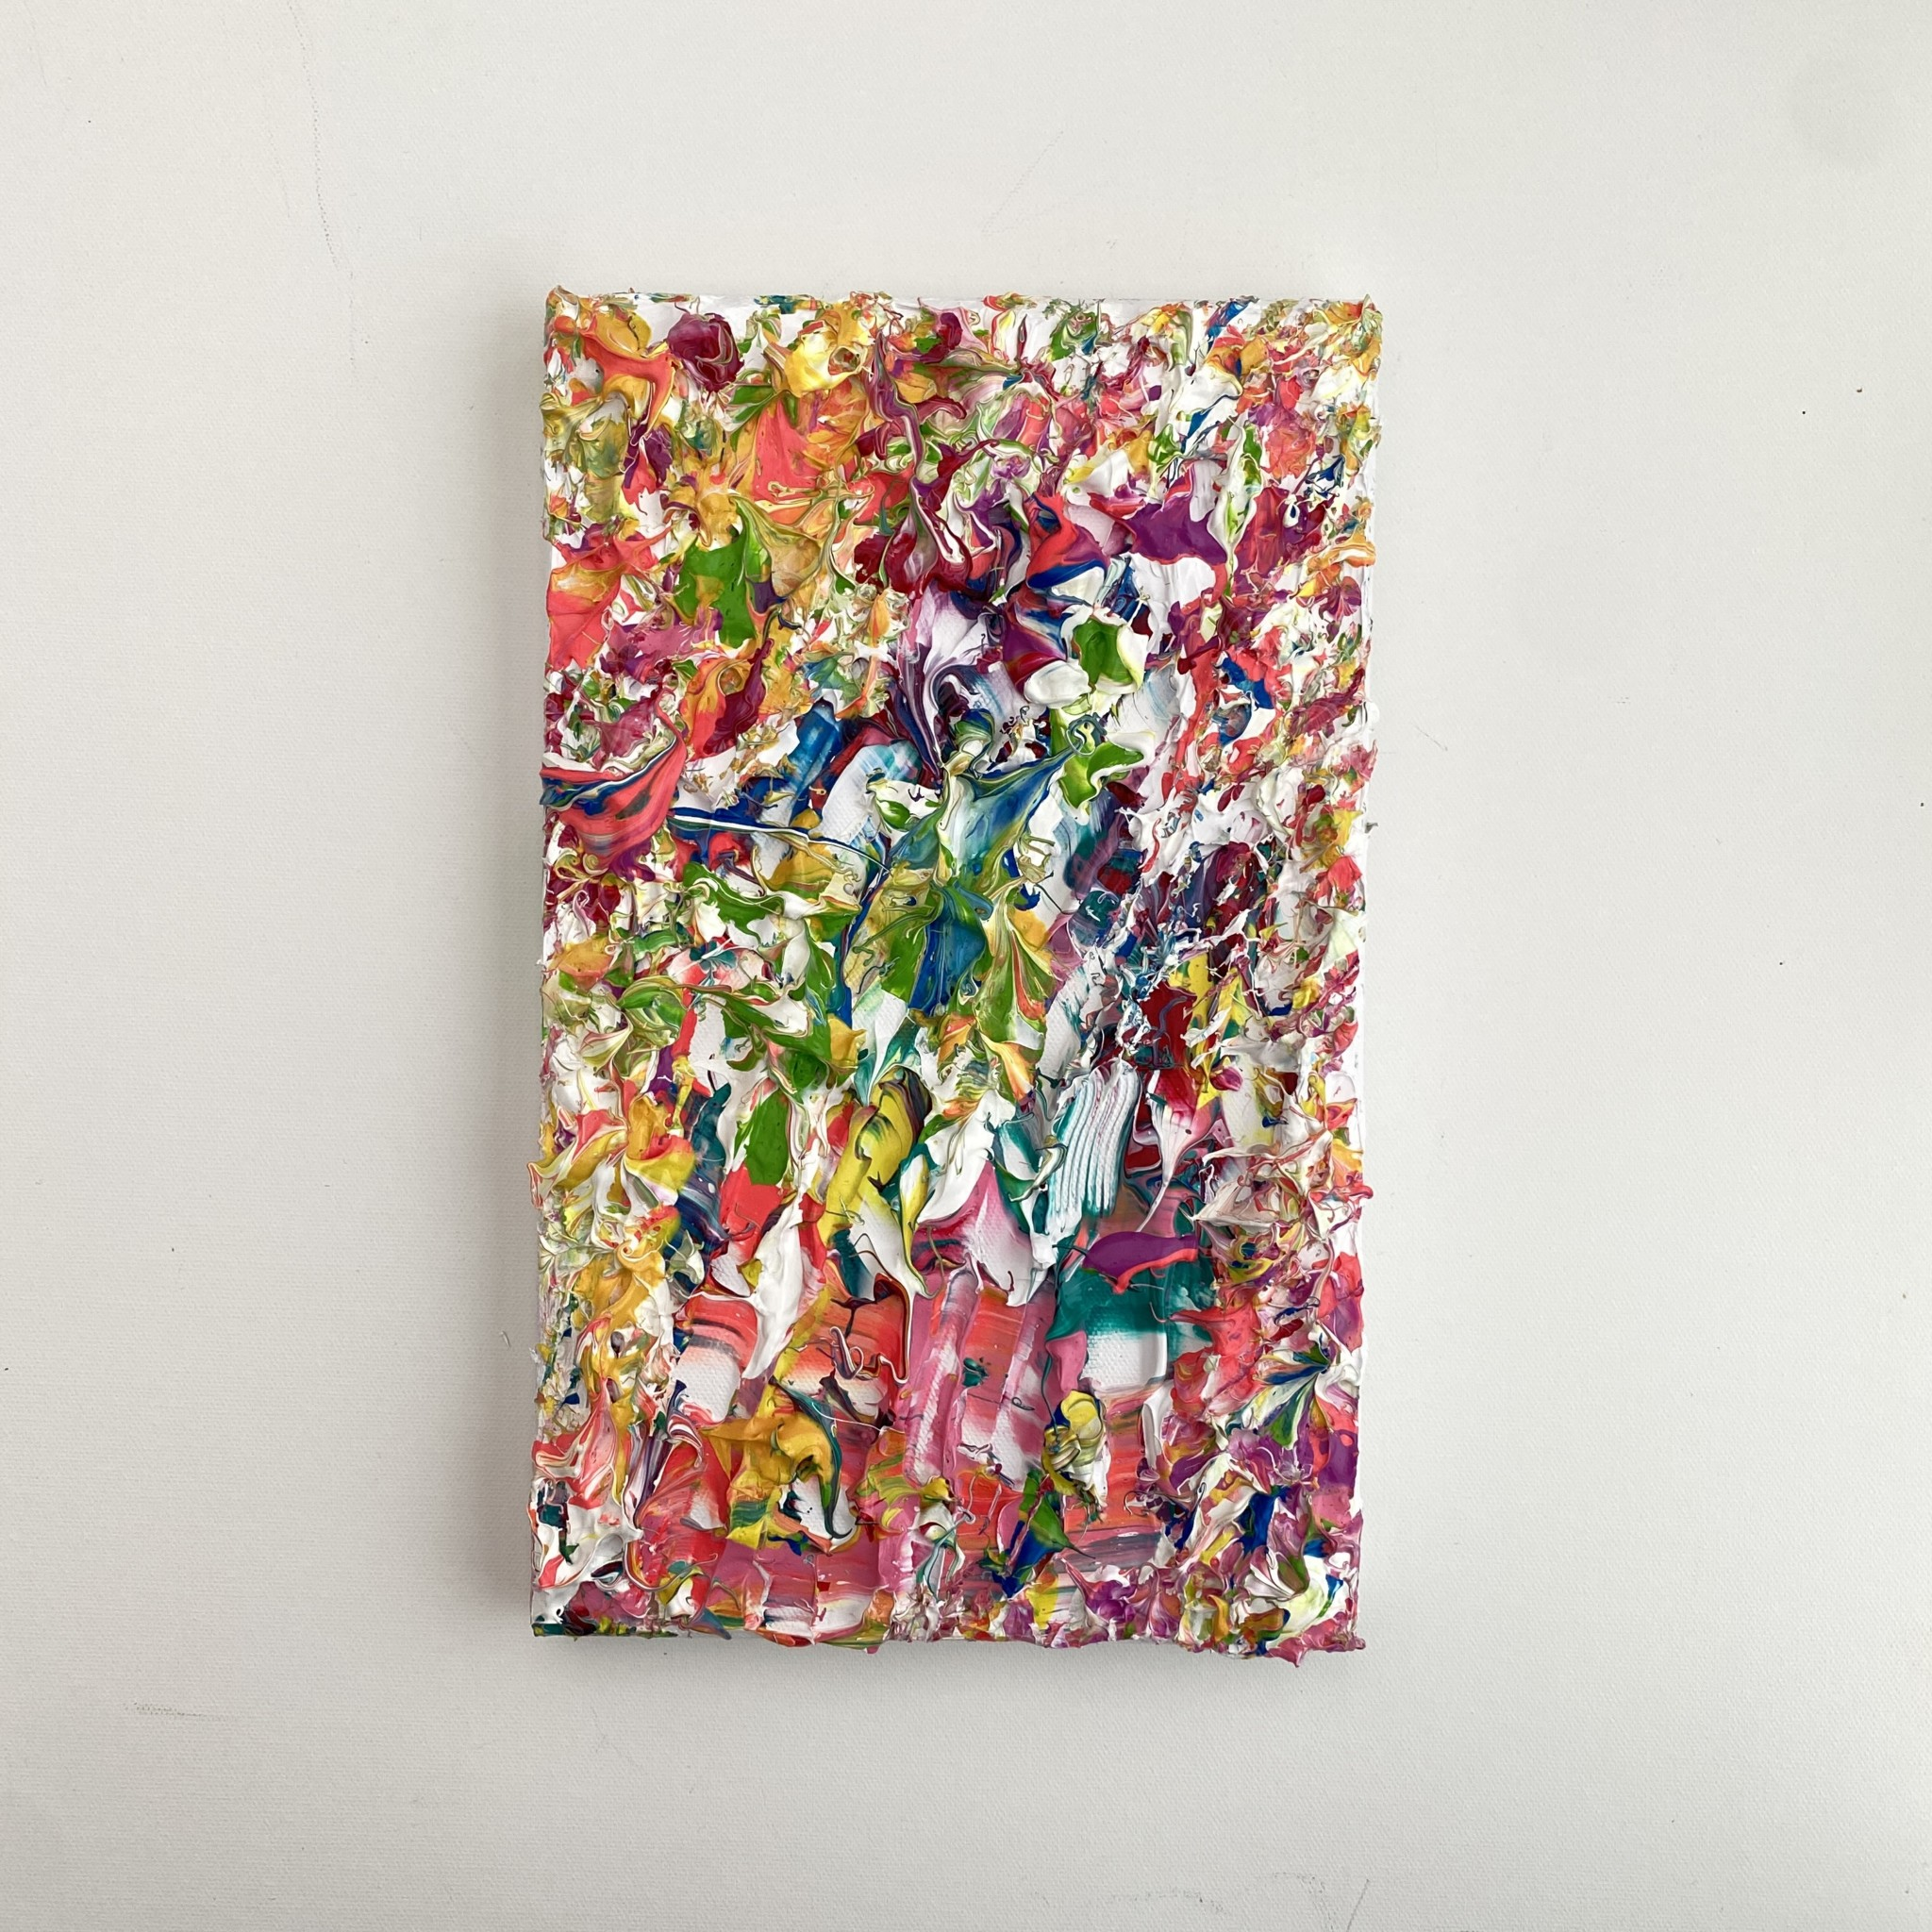 gallery full view of Think Pink an plant life inspired colourful pink abstract original impasto style art by Emily Duchscherer Kirk.